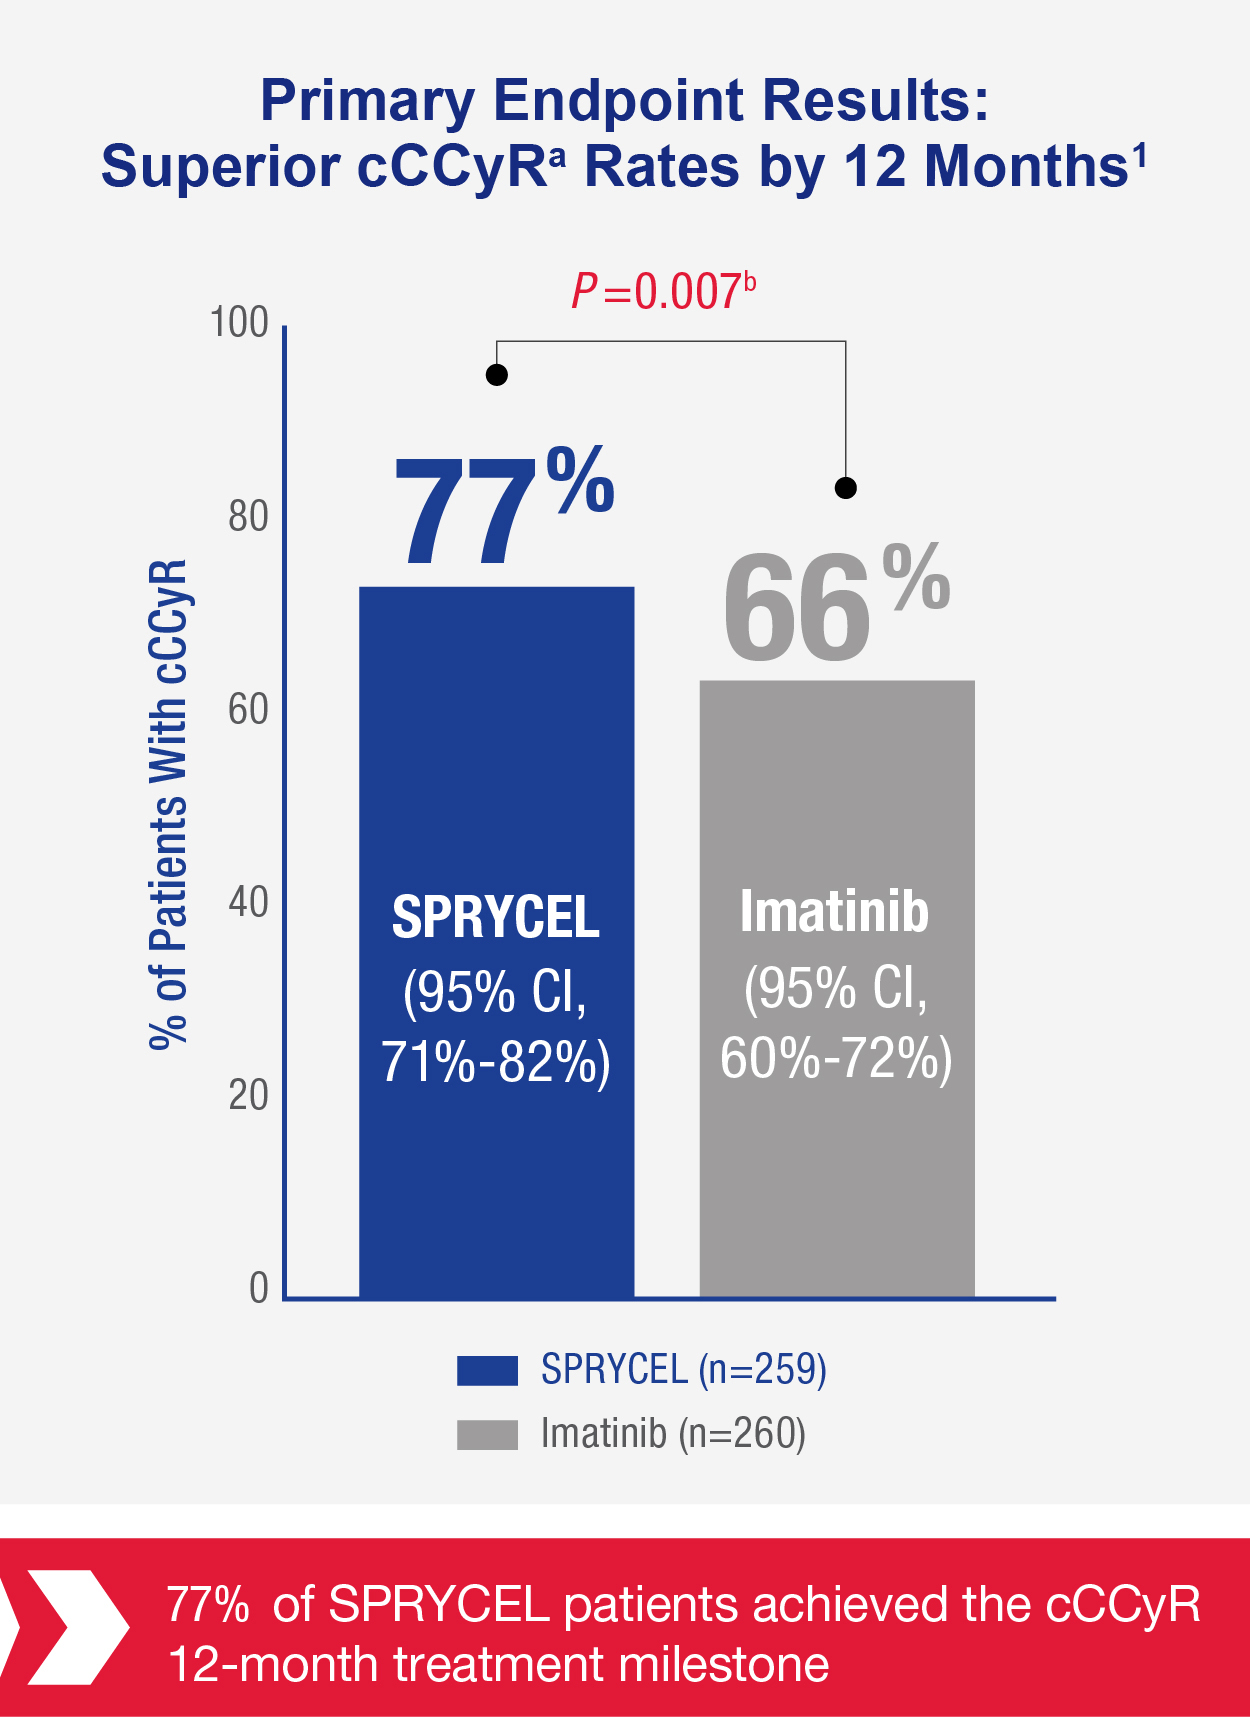 Chart shows the primary endpoint results for cCCyR rate where SPRYCEL measured 77% of patients with cCCyR ( 95% Cl, 71%-82%) over Imatinib 66% (95% Cl, 60% - 72%).